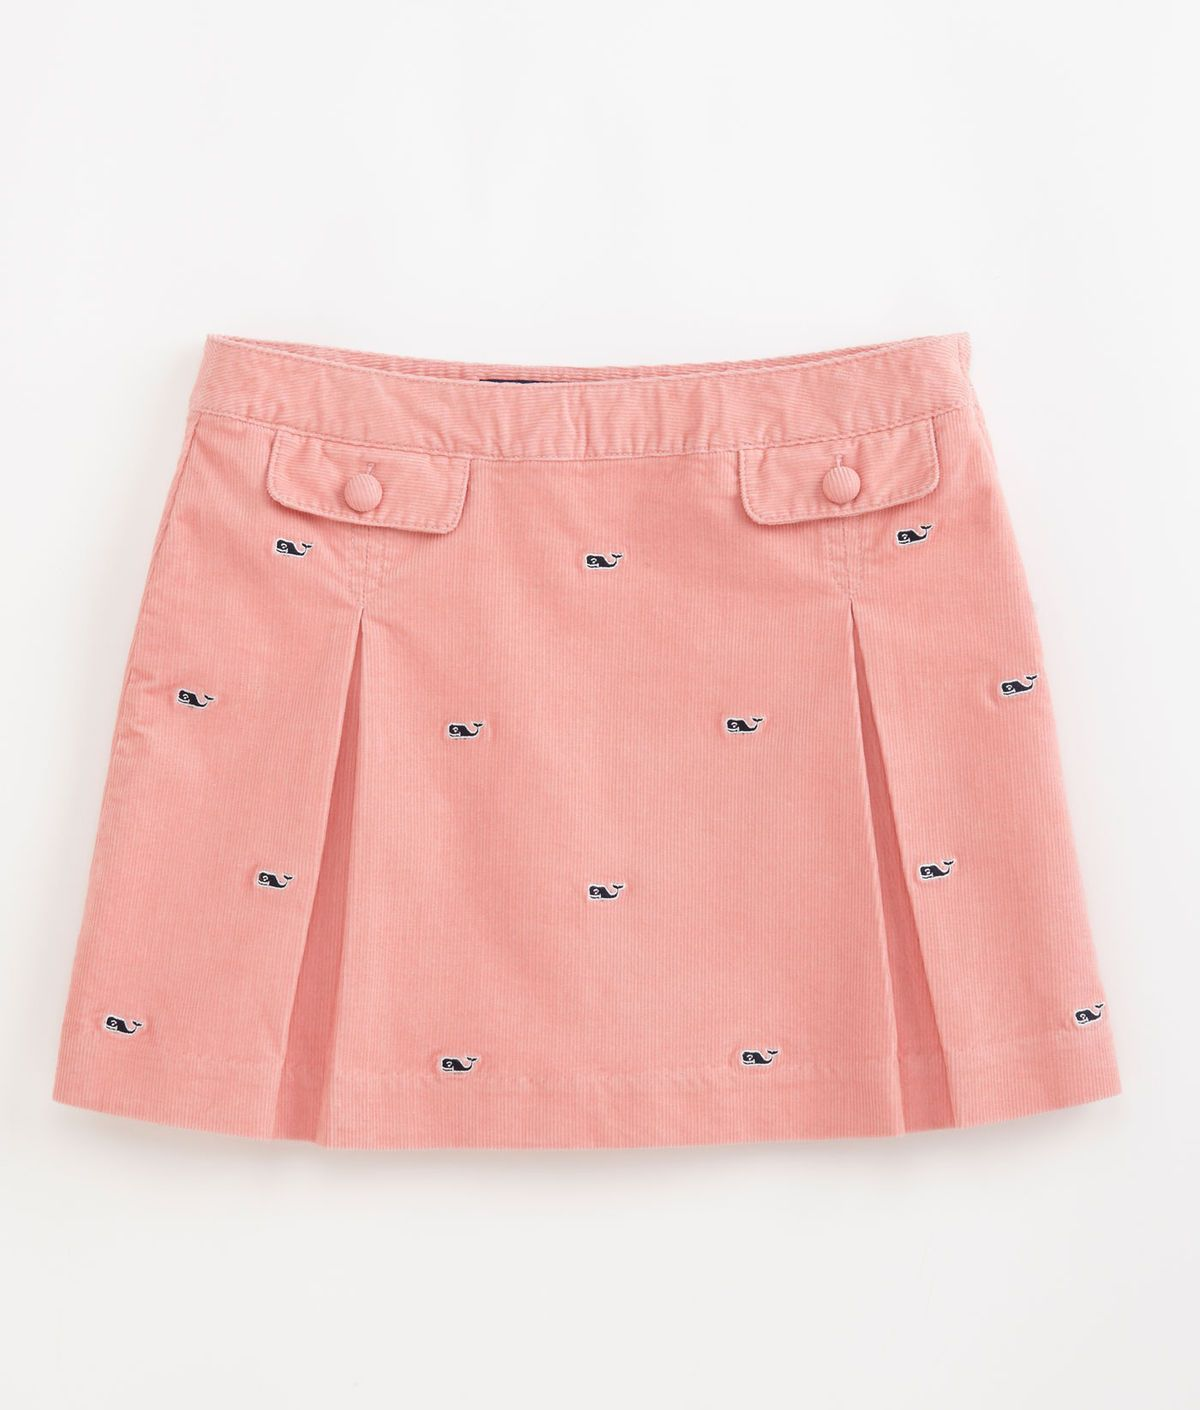 Vineyard Vines Embroidered Whale Cord Skirt Dresses Kids